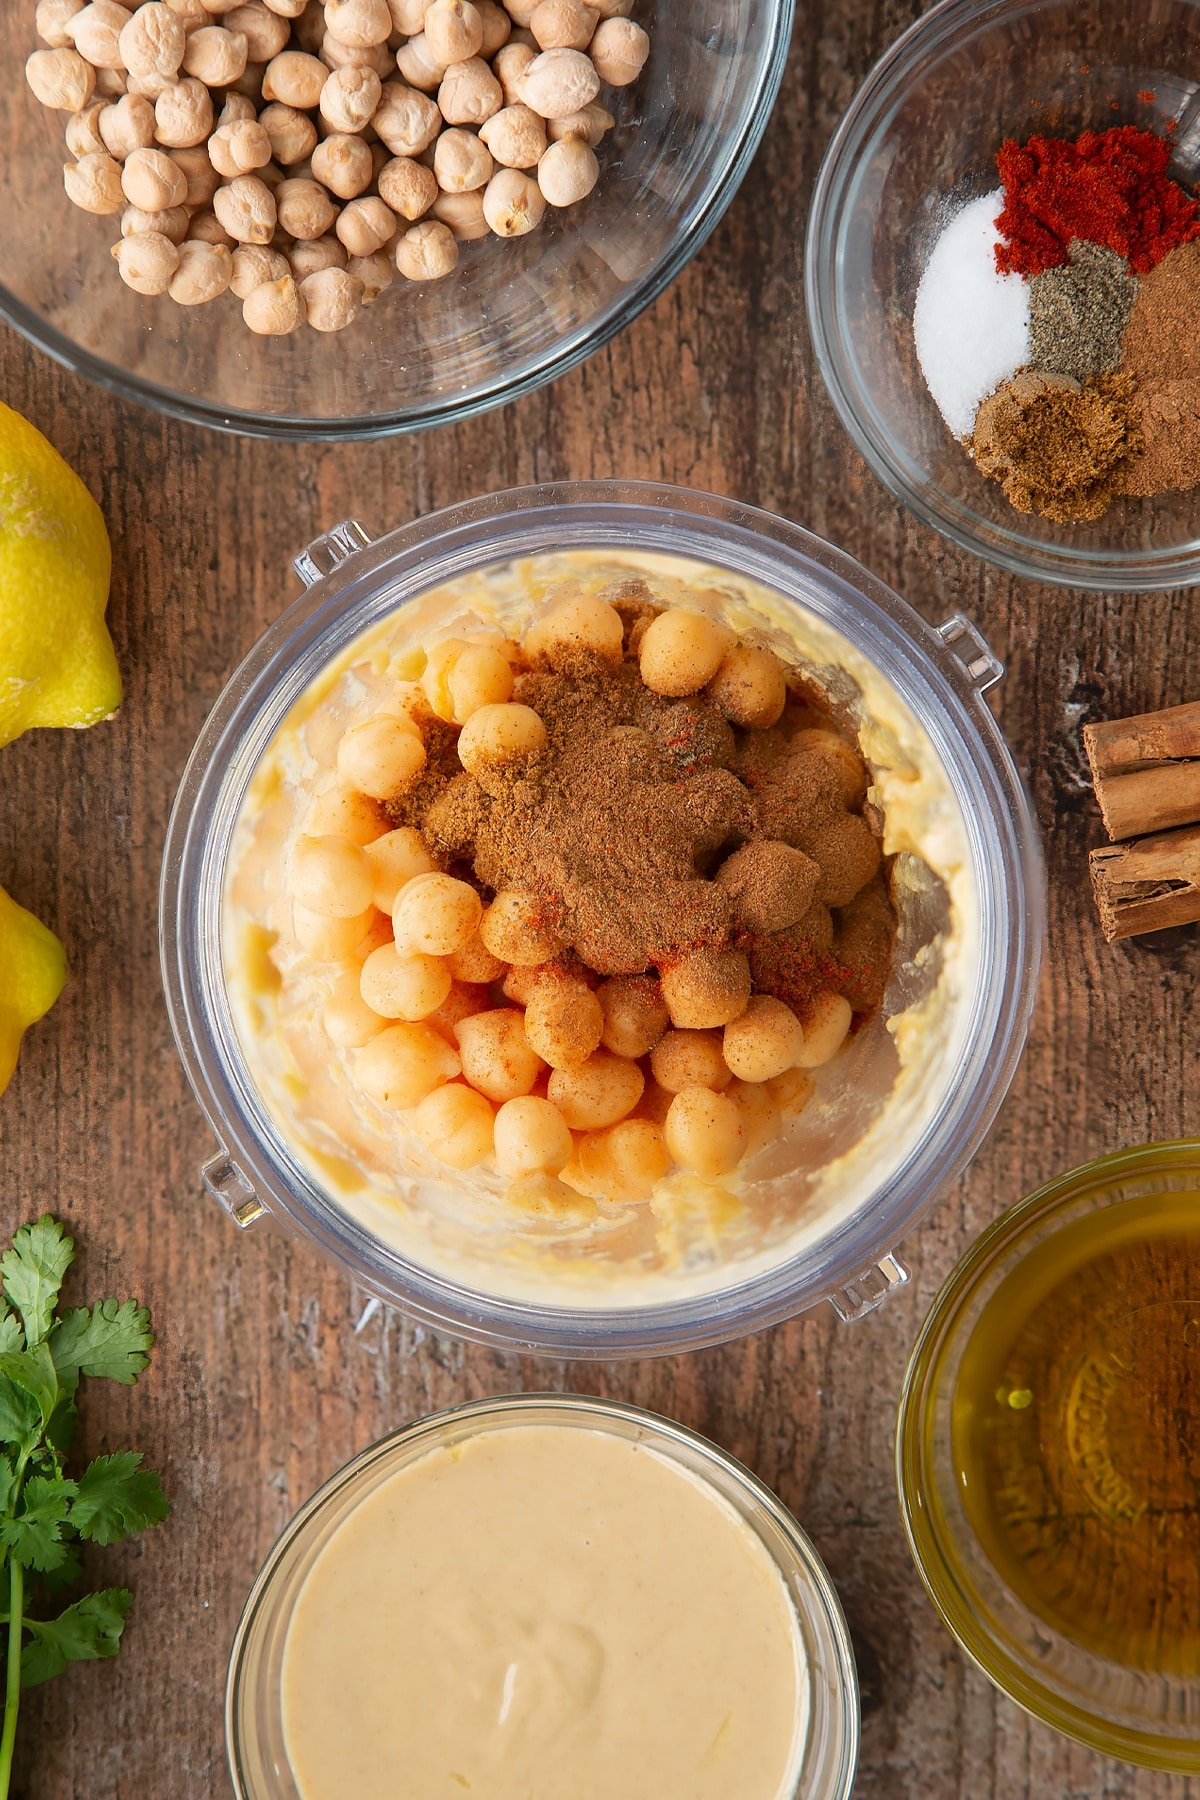 Tahini, lemon juice and oil whipped together in a small blender bowl with cooked chickpeas and spices on top. Ingredients to make cinnamon hummus surround the bowl.